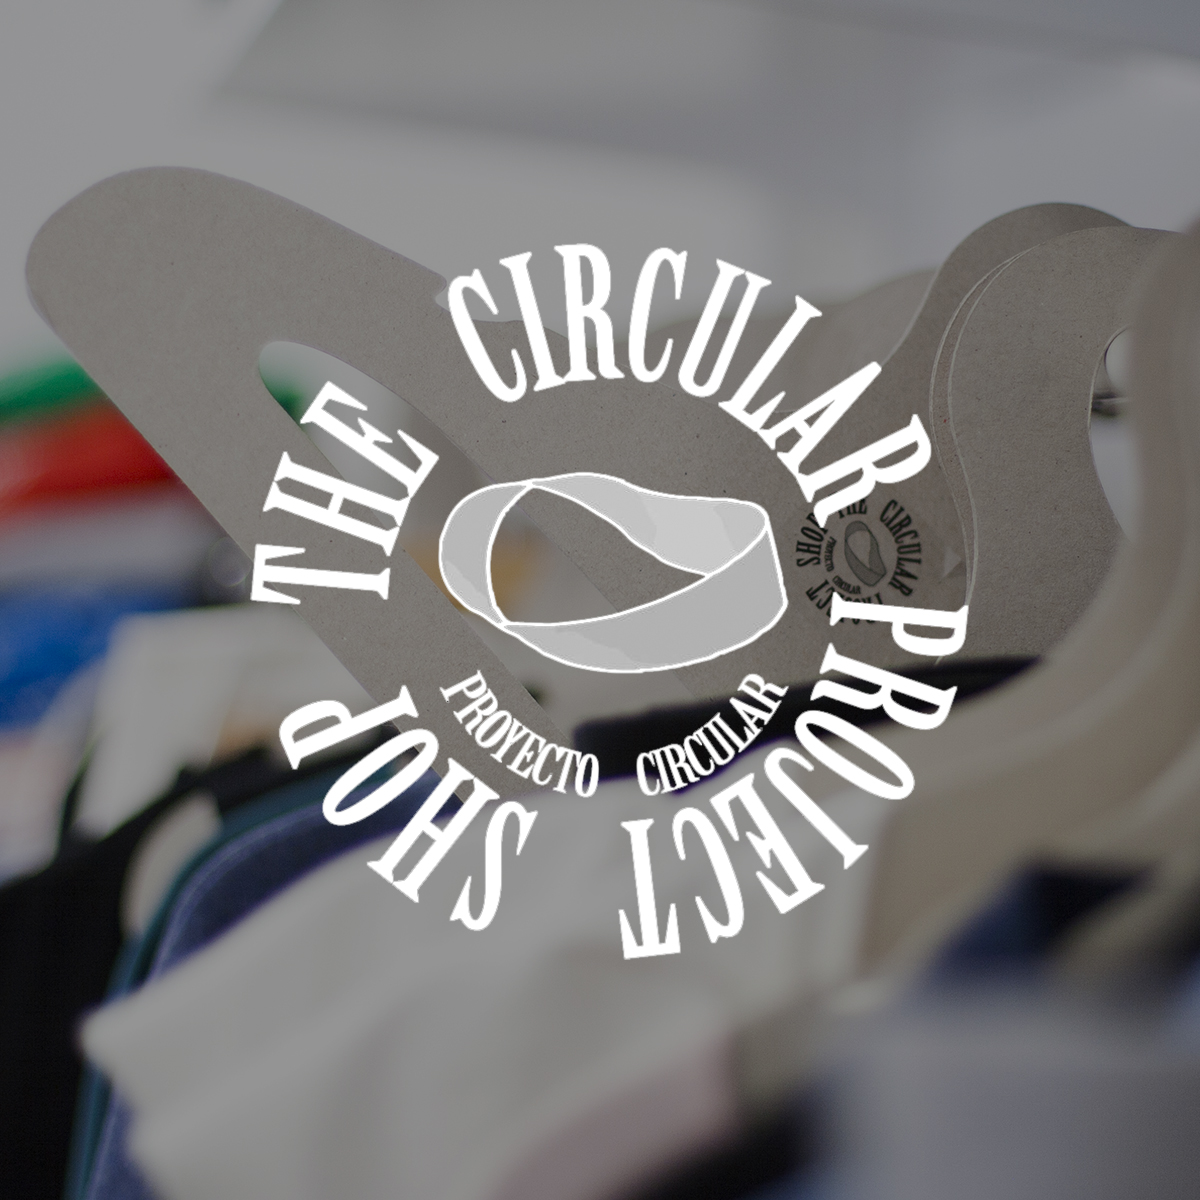 Proyecto The Circular Project Shop